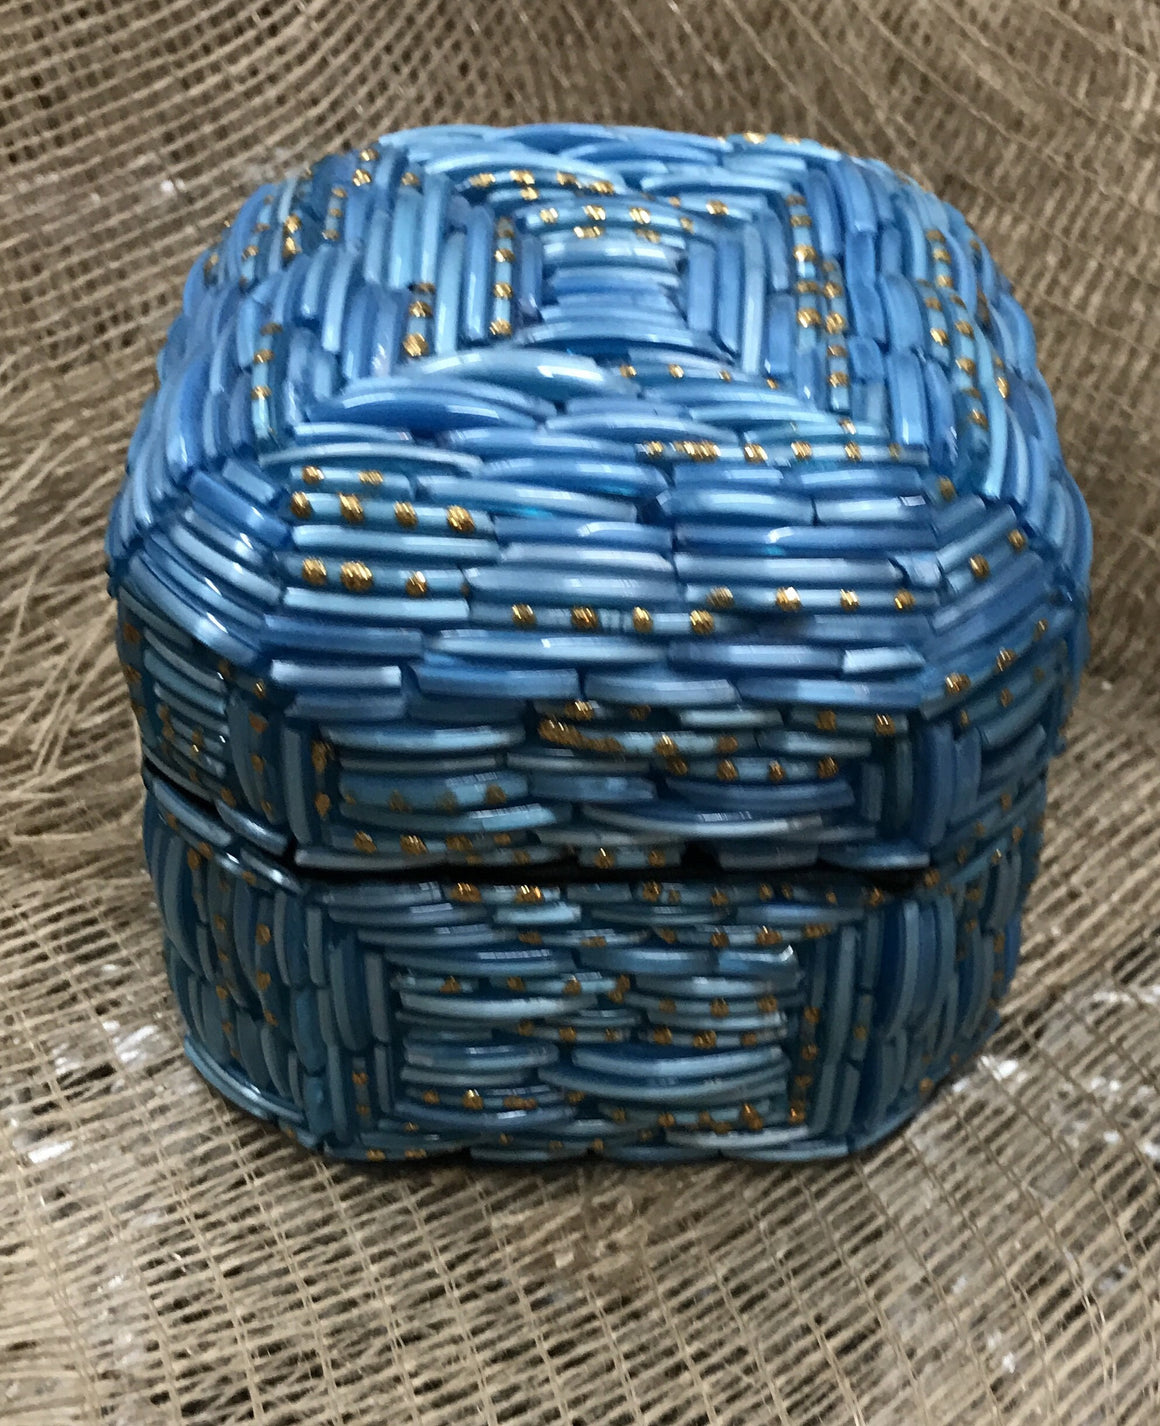 Crystal Blue Jewelry or Trinket Box - VINTAGE JOURNEY MARKET - Upcycling & Restoration